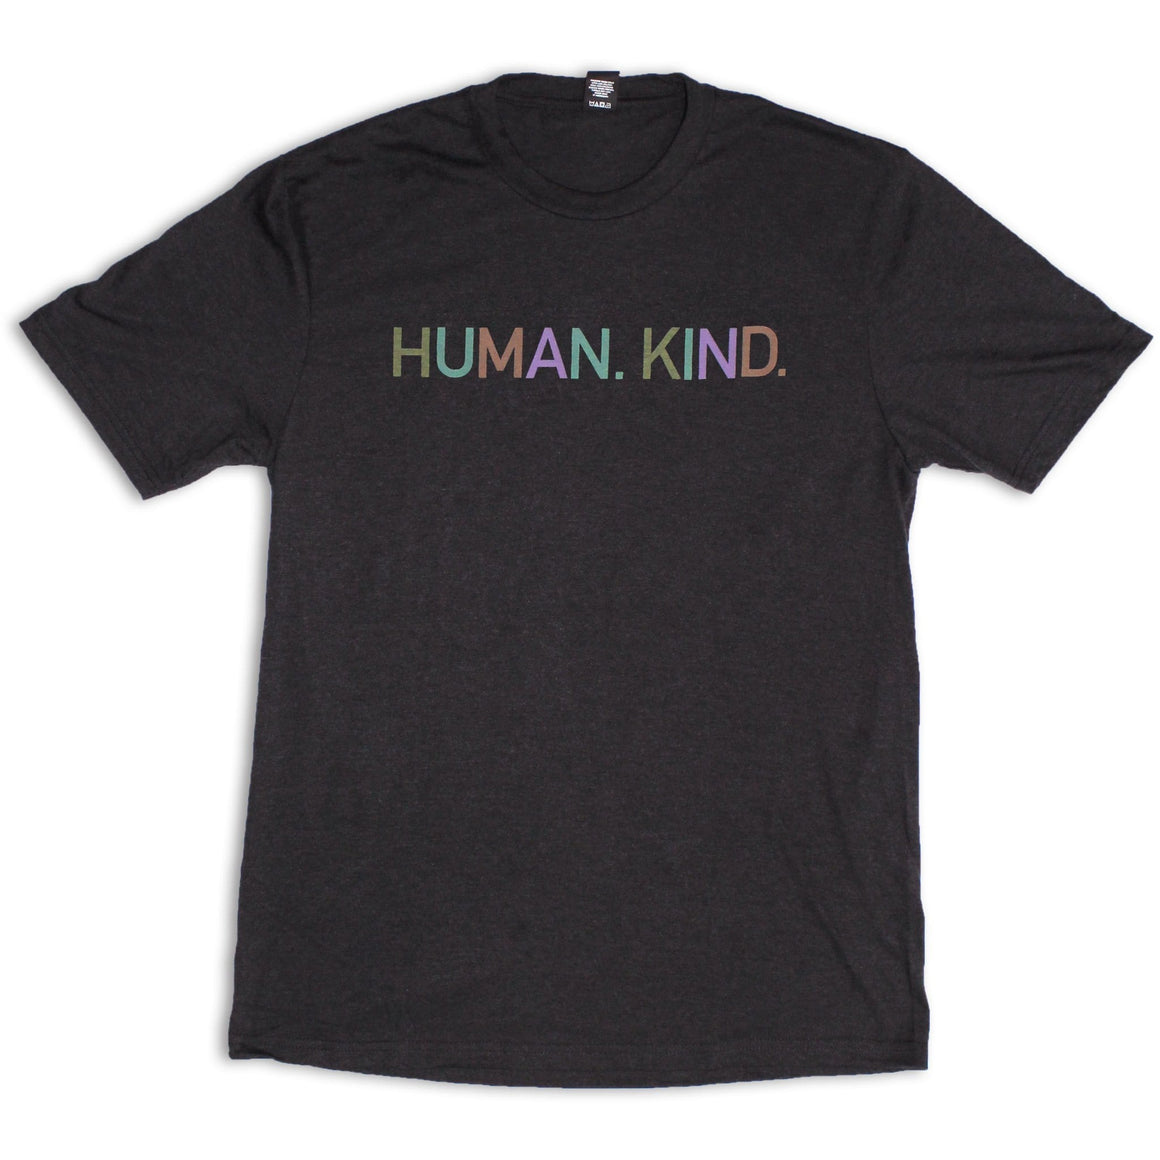 Men's Black Frost Crew Tee with Human.Kind.